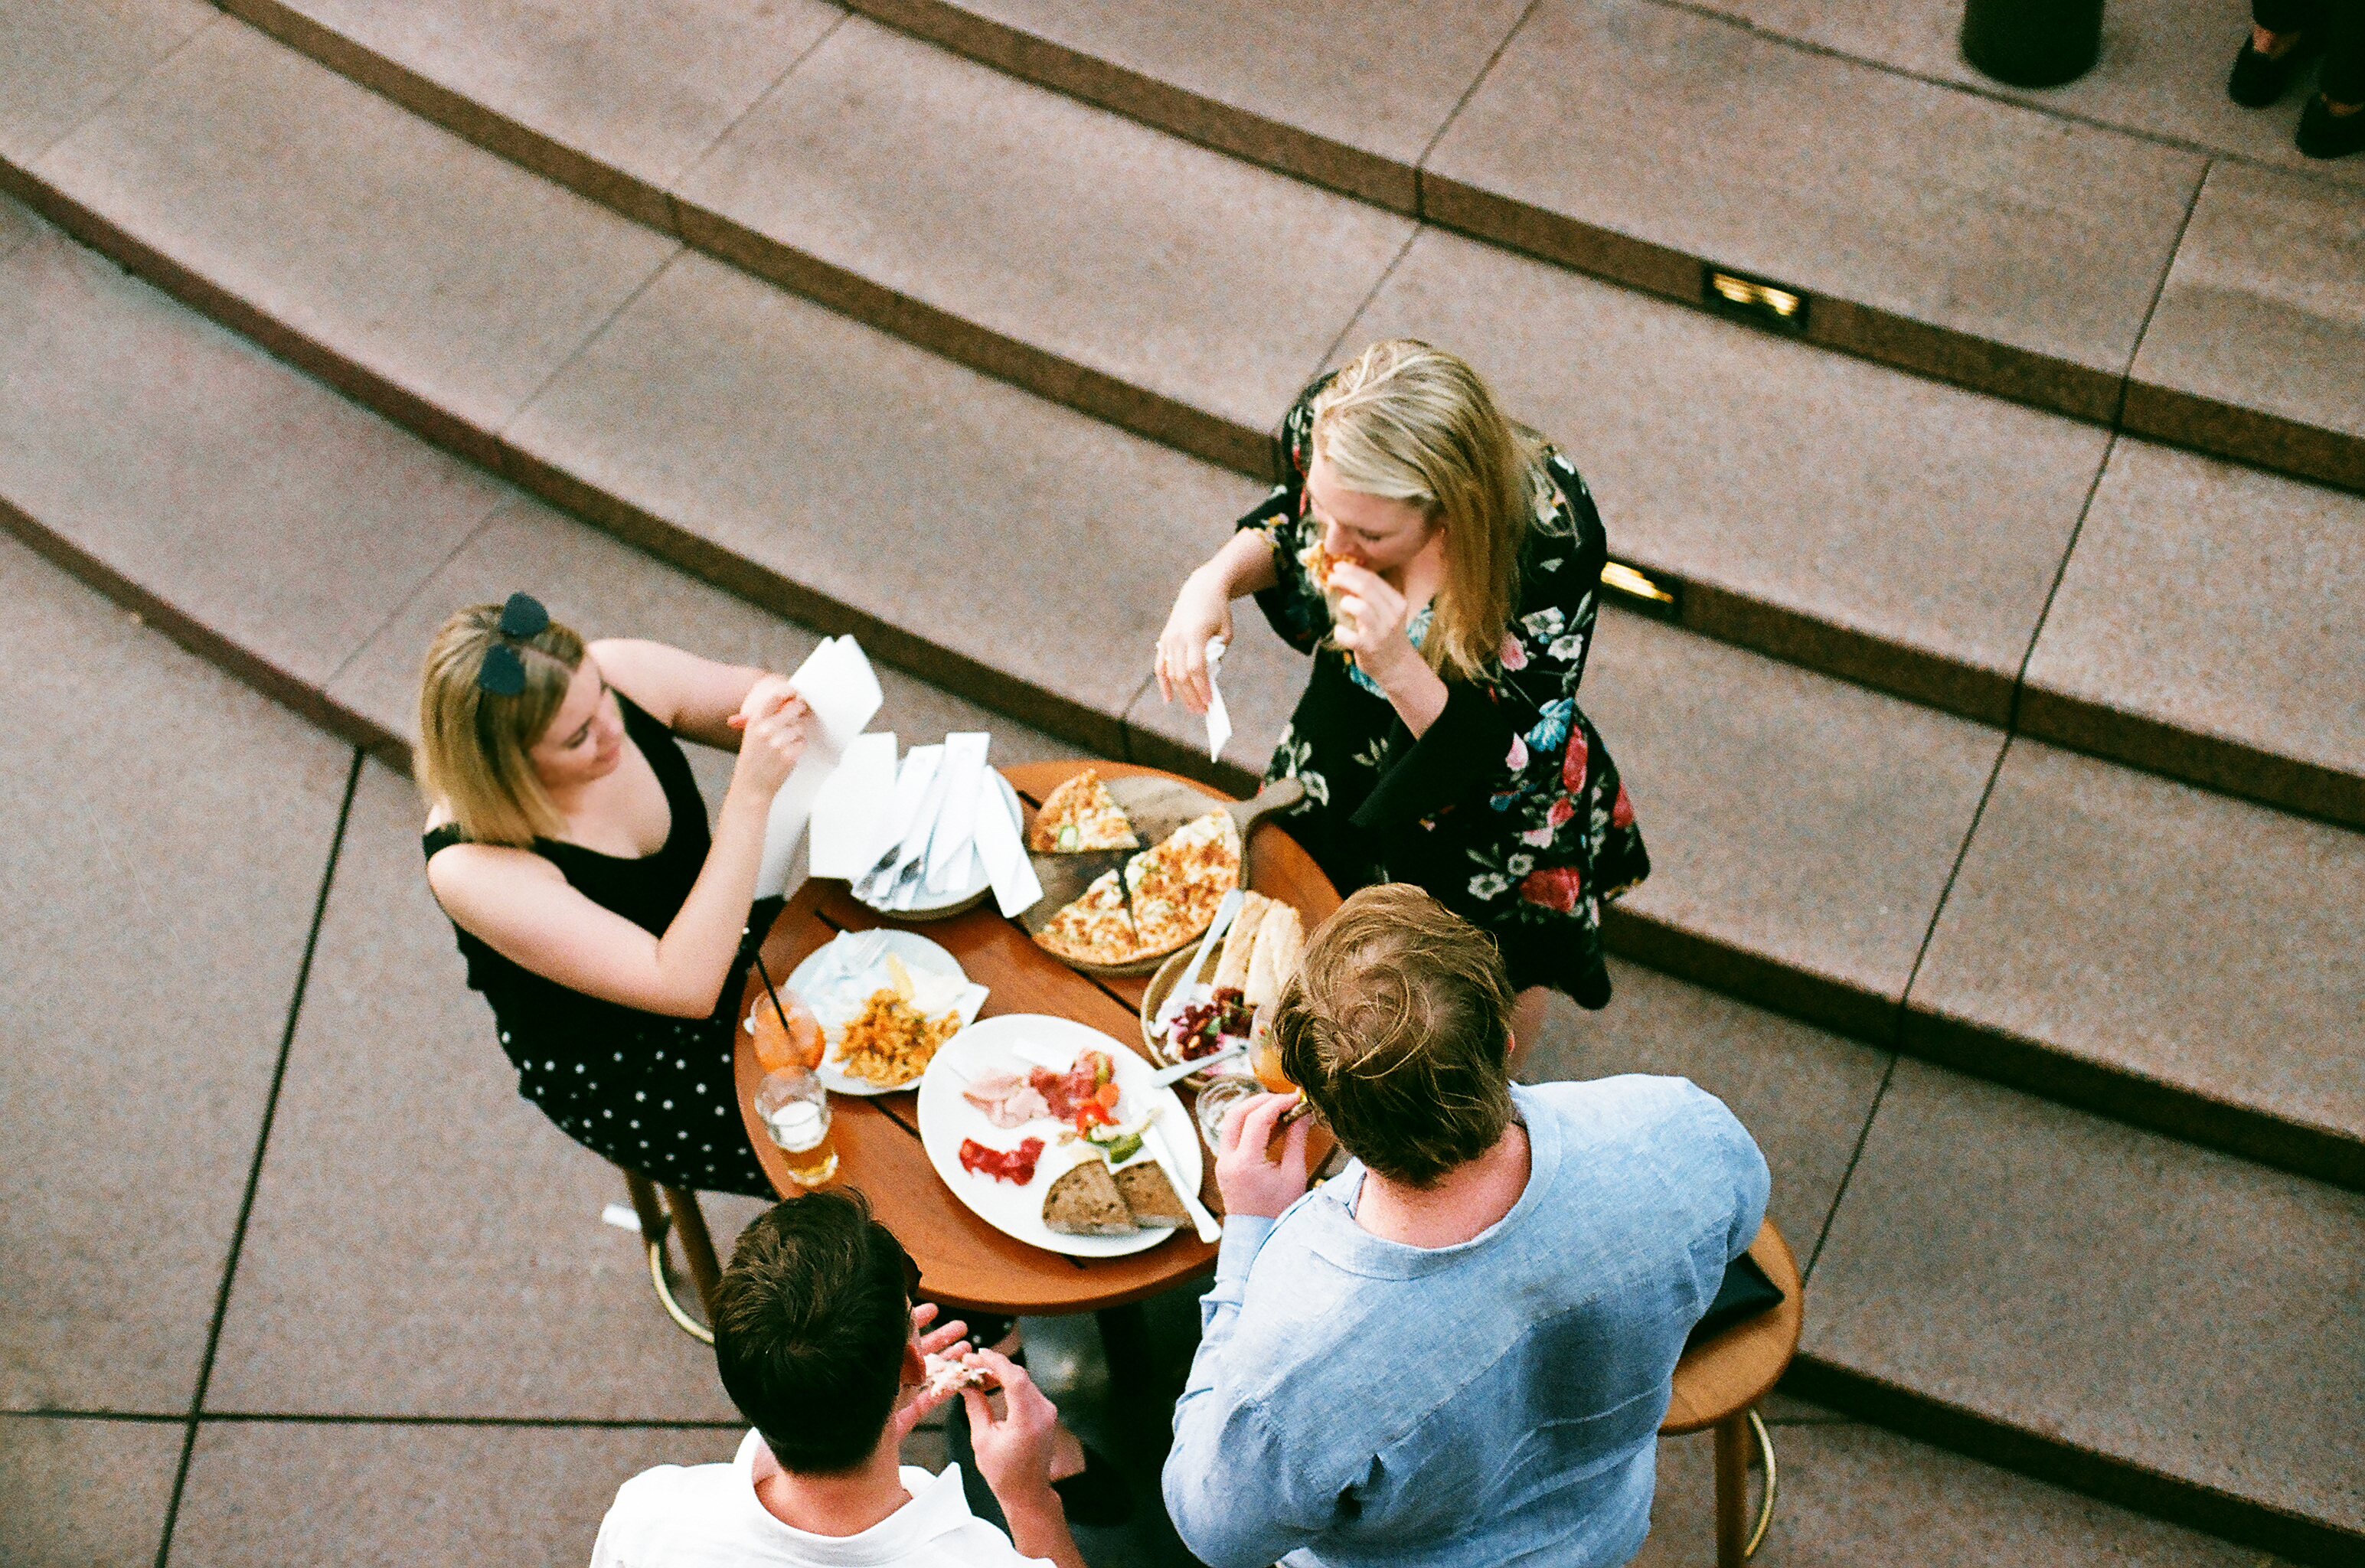 Free stock photo of 35mm, 35mm film, analog photography, chat